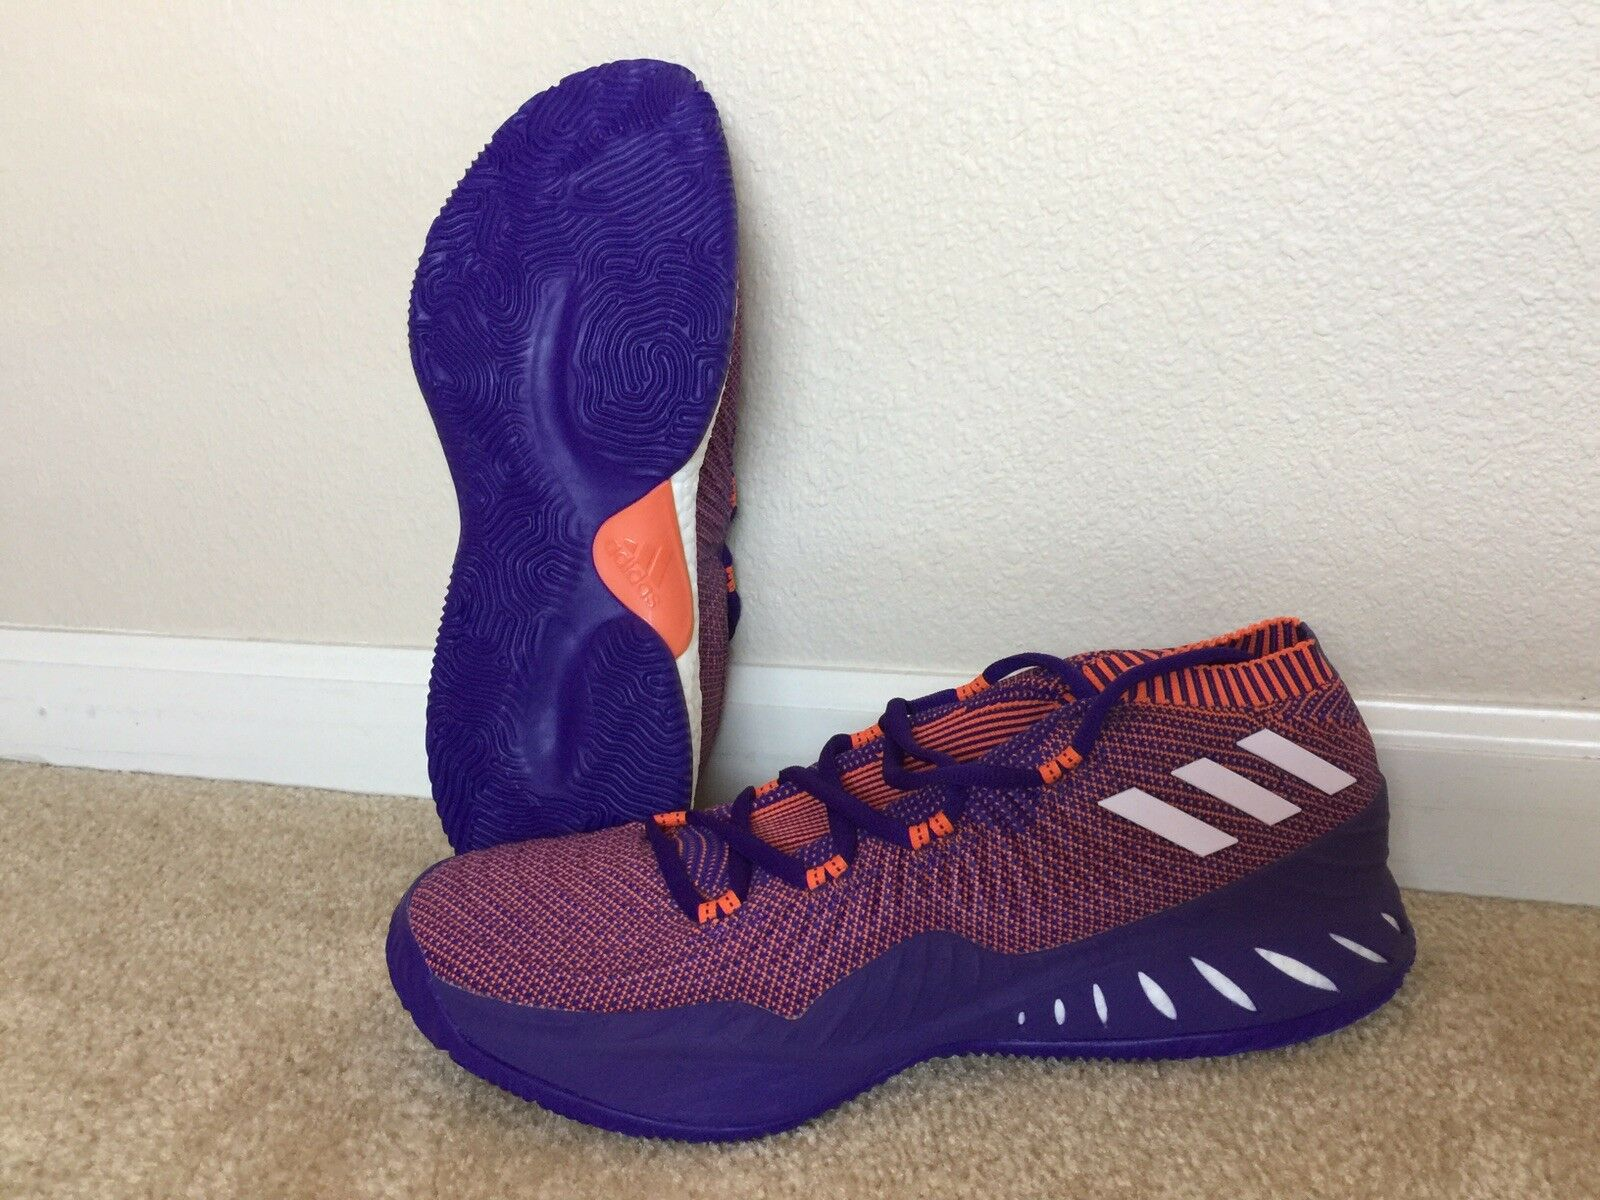 Adidas Crazy Explosive Low Dragan Bender PE size 15 Boost Phoenix Suns 2017